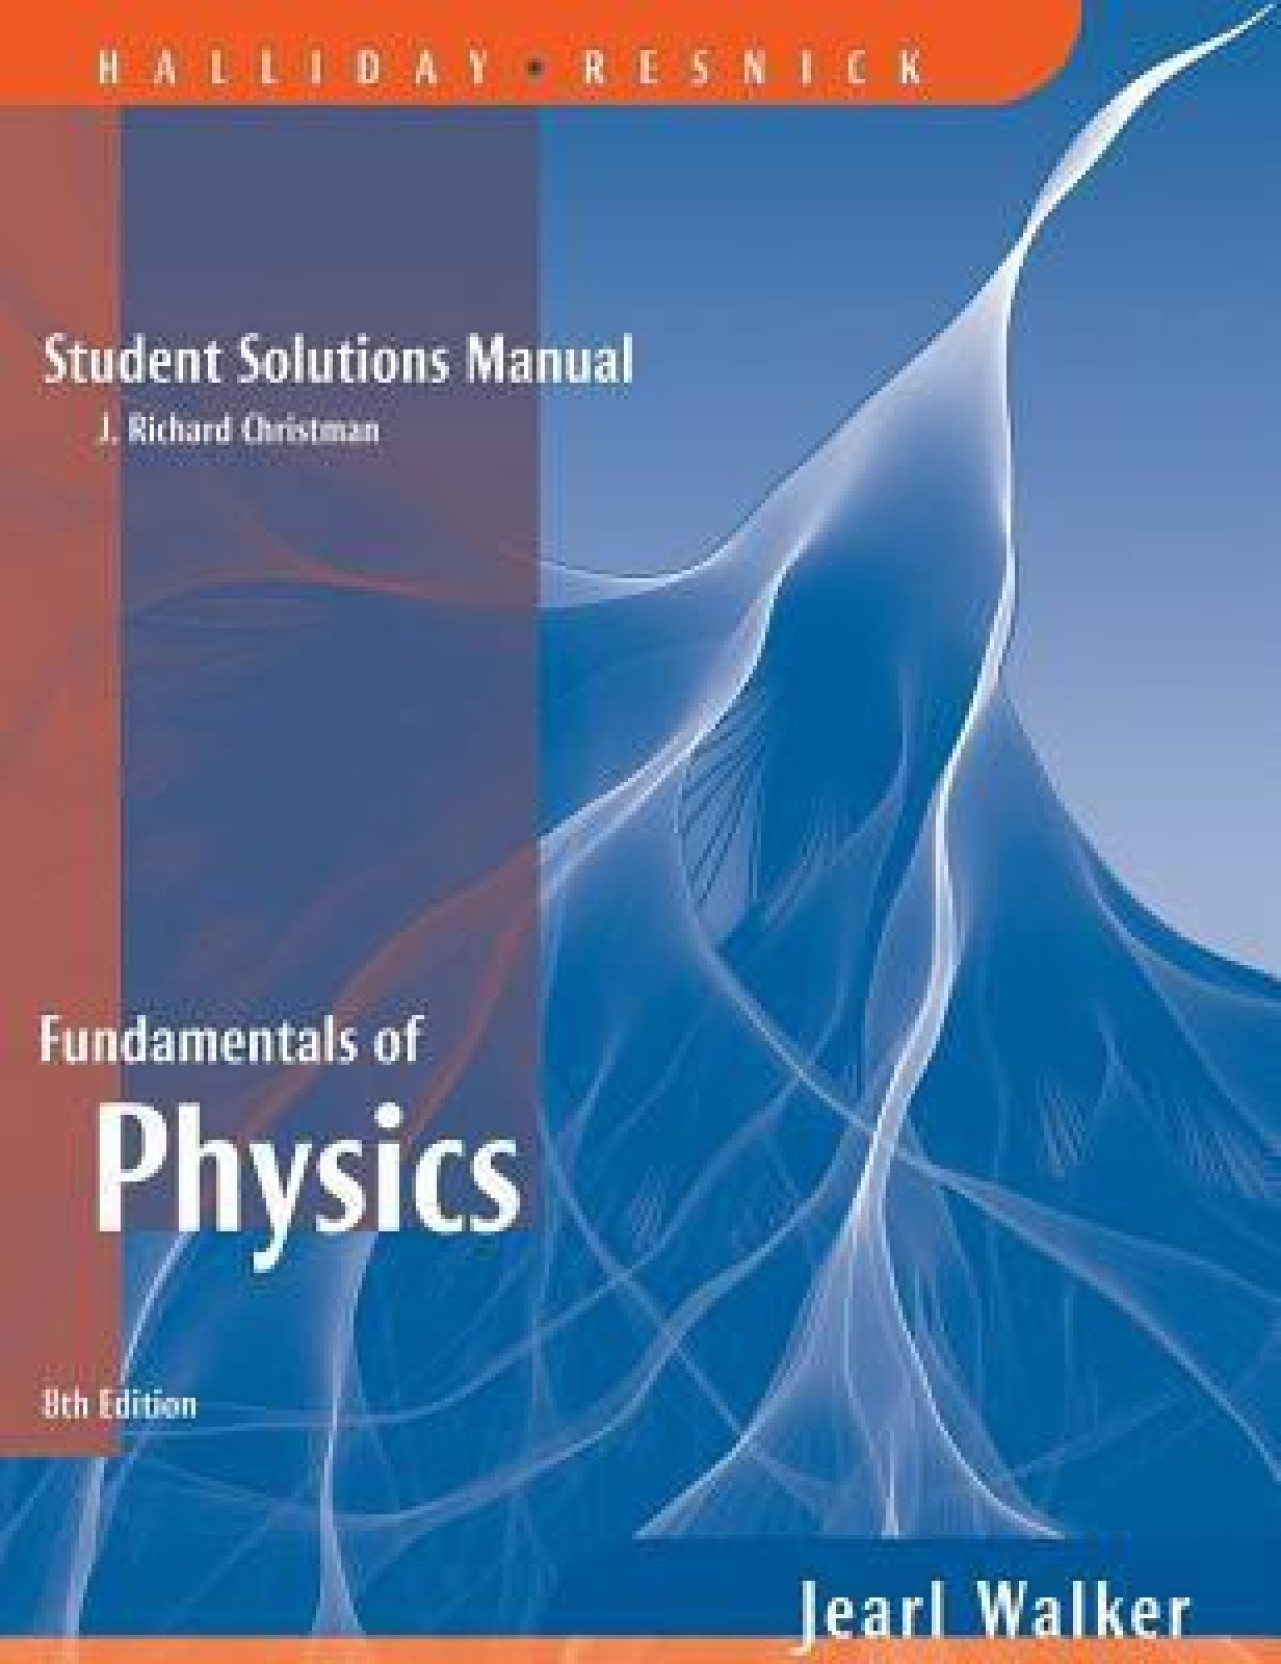 Fundamentals Of Physics, Student Solutions Manual : 8Th Edition. Share